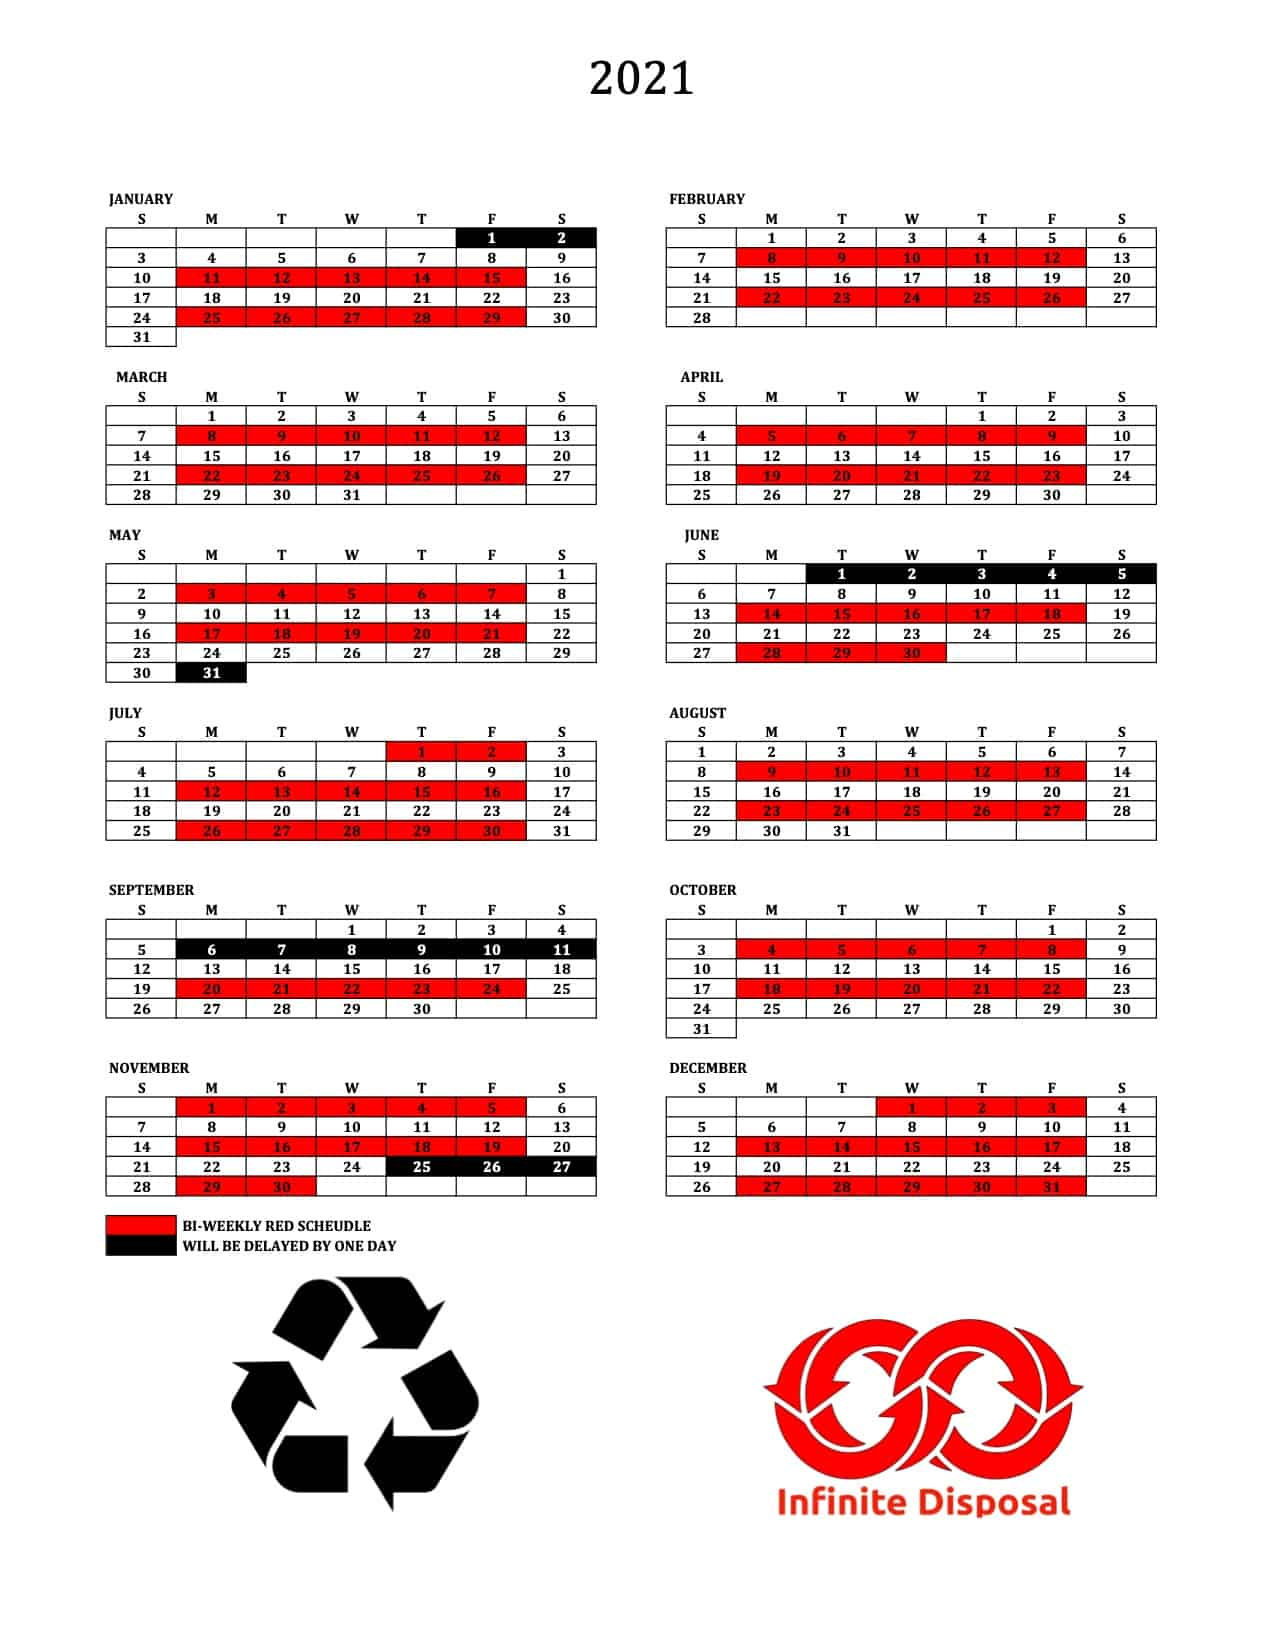 Ask office if you are white or red week recycling